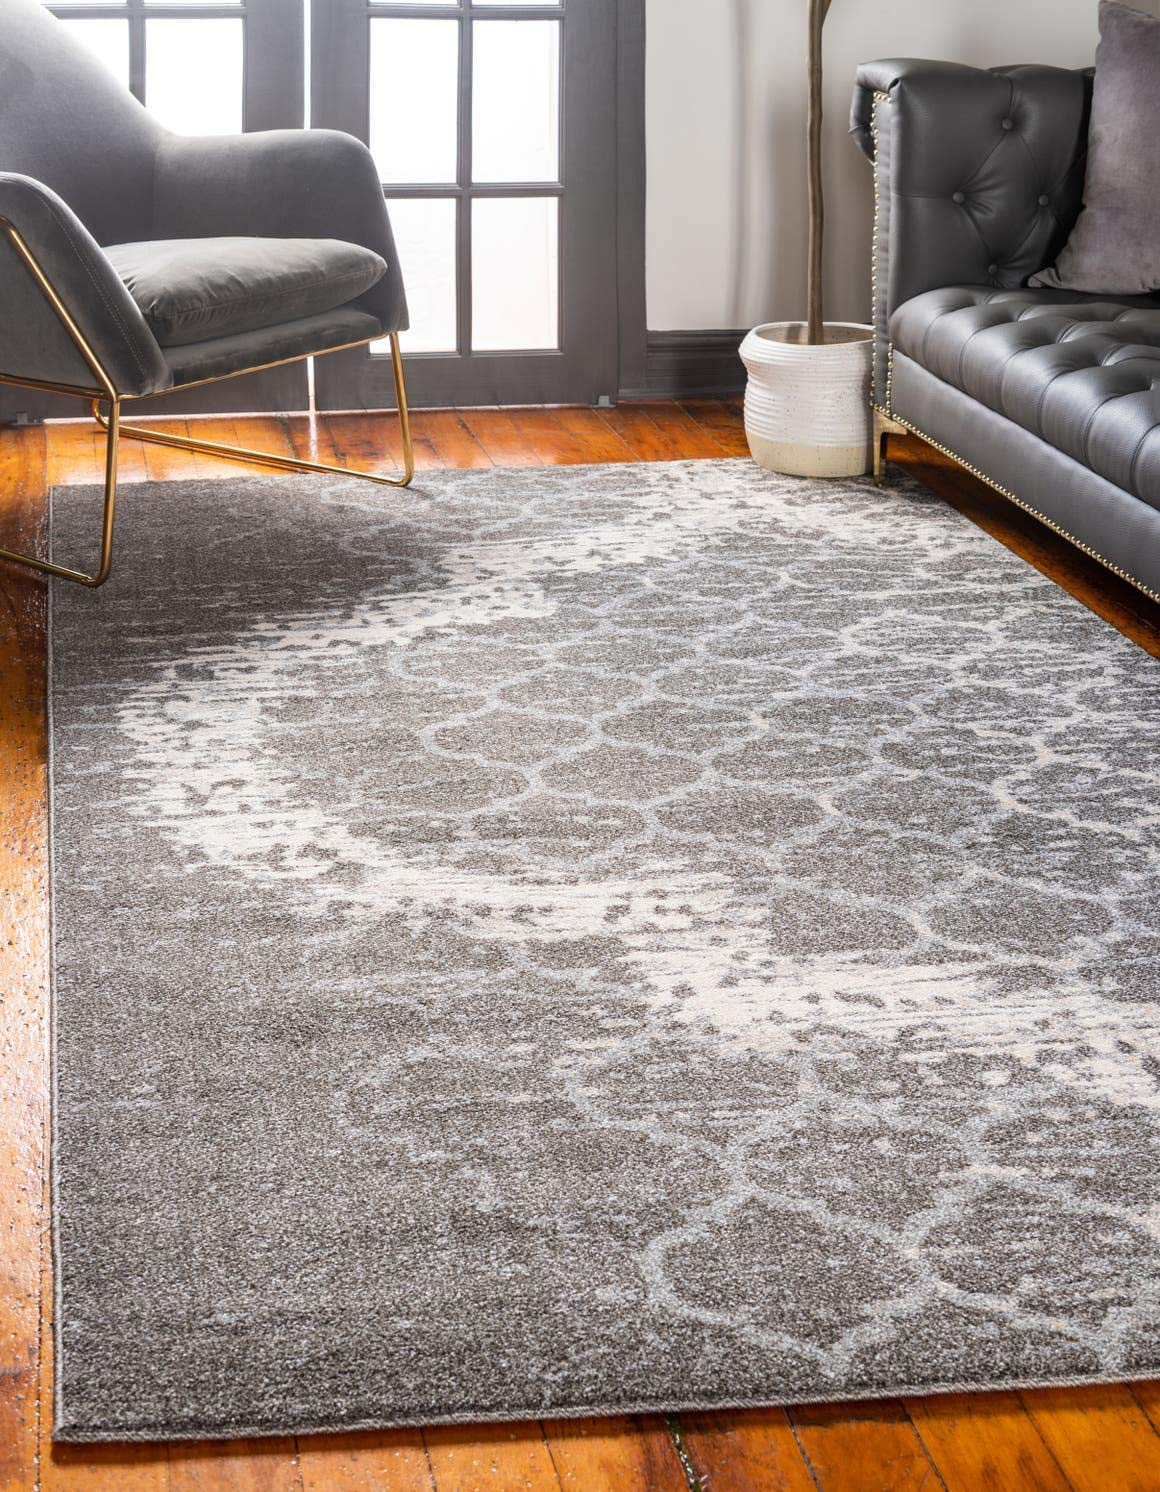 Unique Loom Trellis Collection Geometric Modern Light Gray Area Rug 4 0 x 6 0